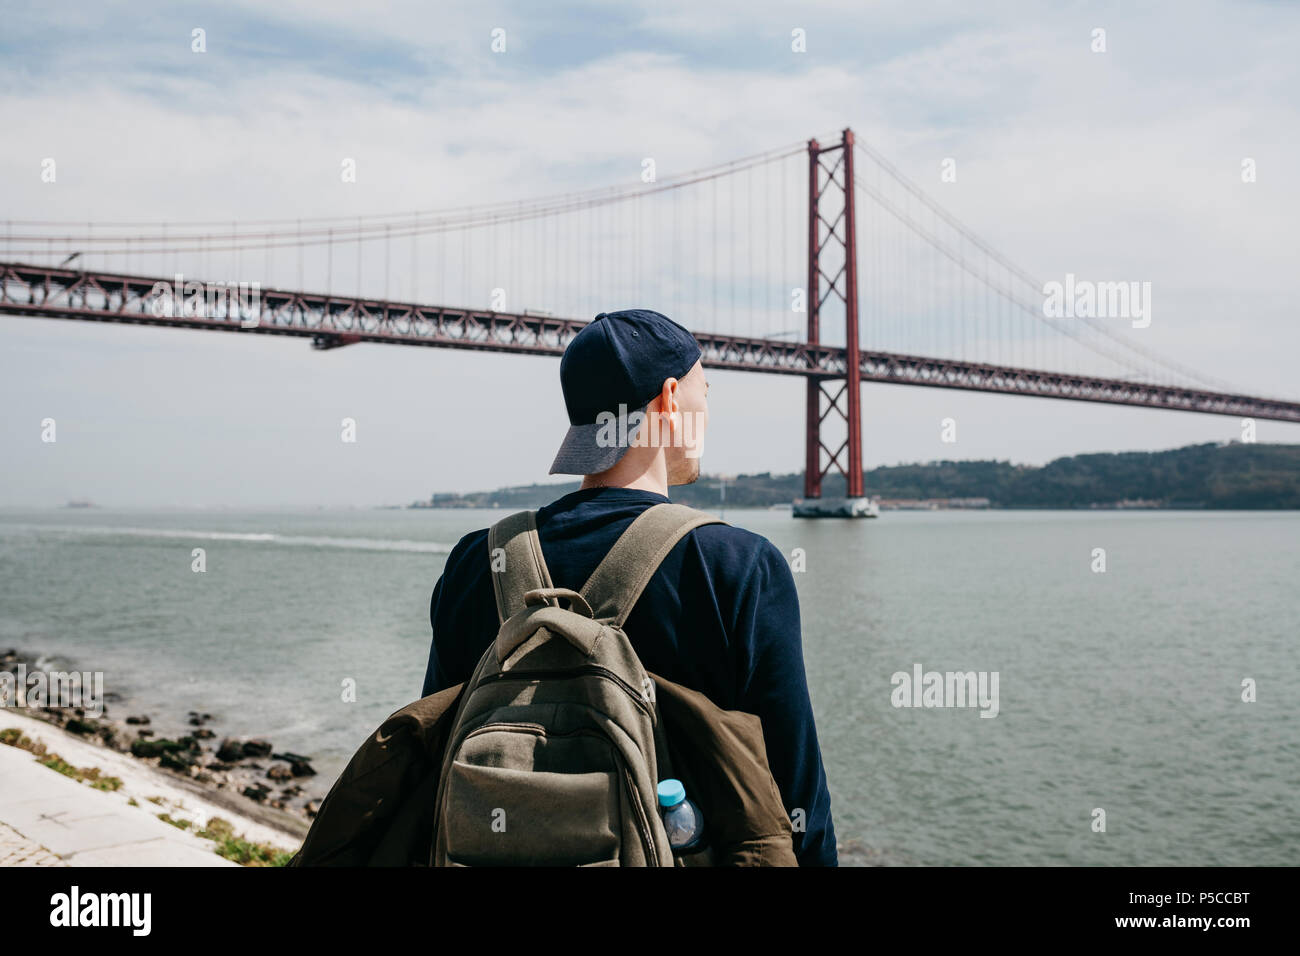 A young traveler or a tourist with a backpack on the waterfront in Lisbon in Portugal next to the 25th of April Bridge - Stock Image